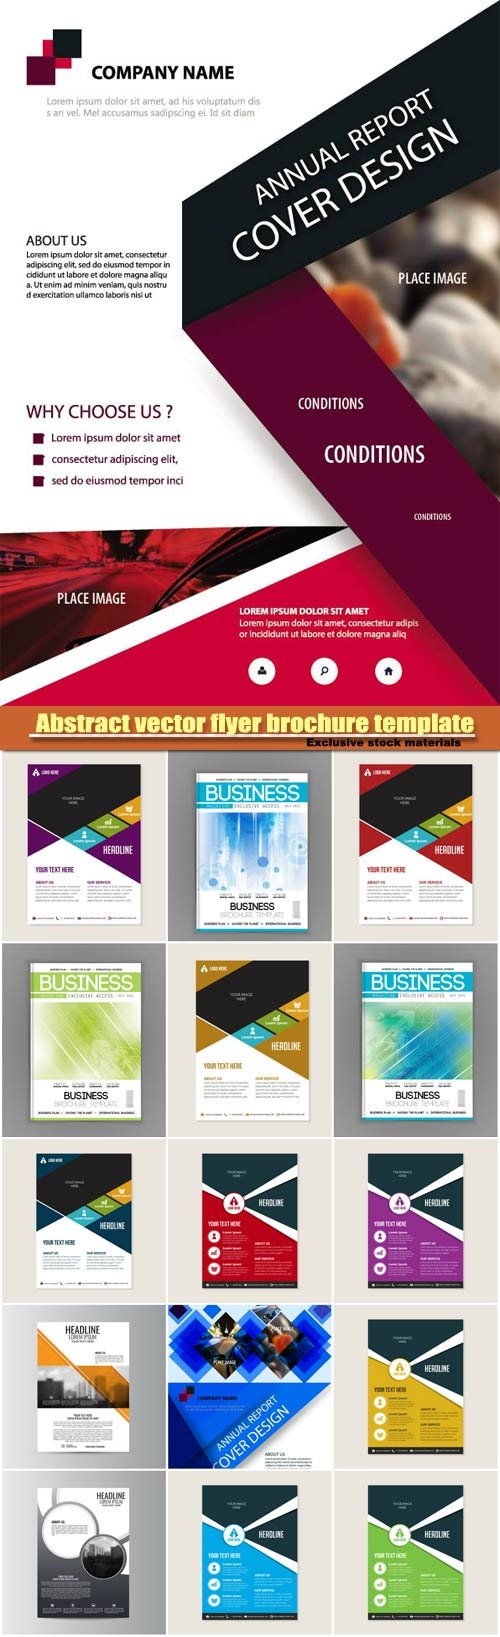 Векторный клипарт Abstract vector flyer brochure template design background